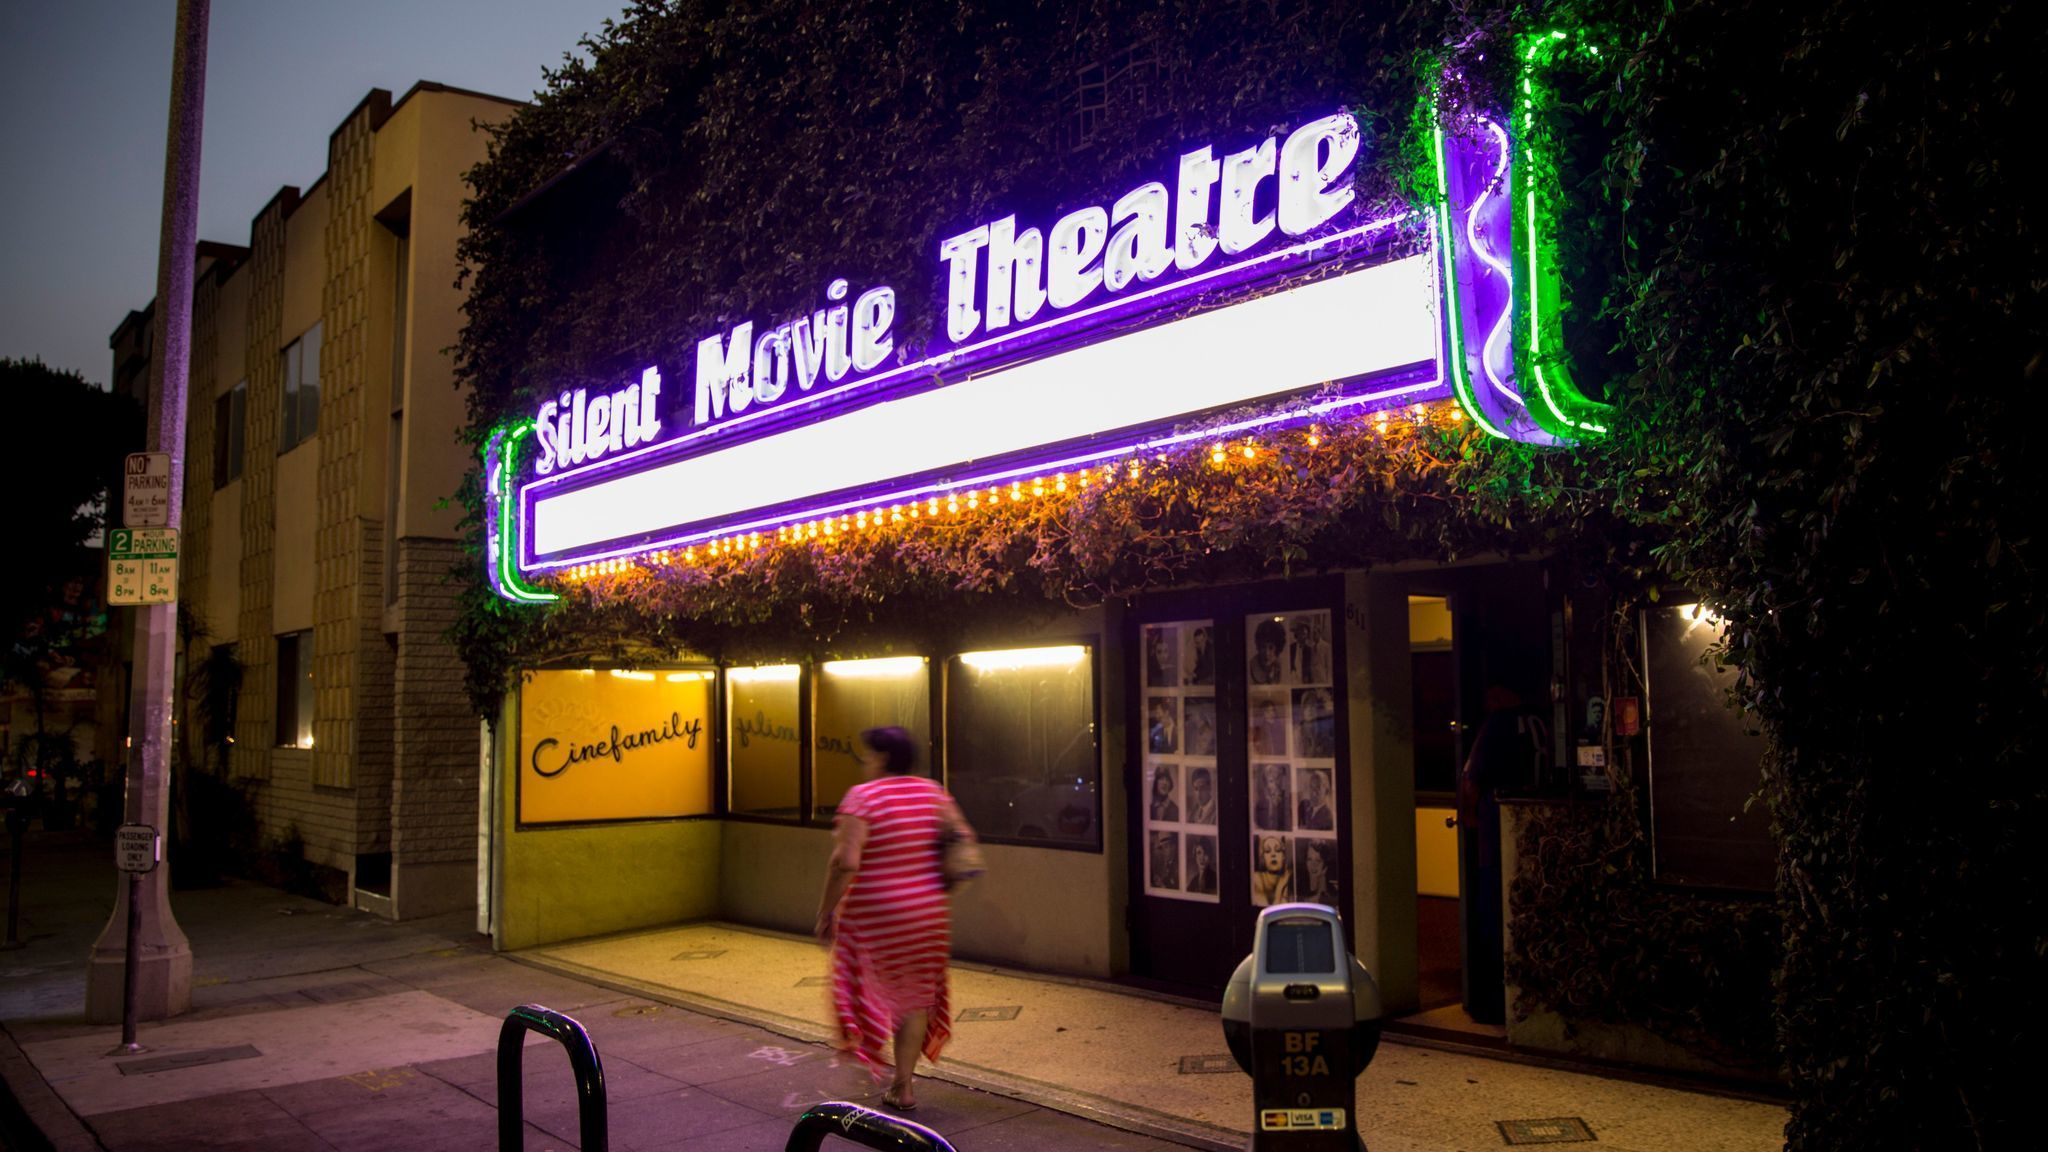 Following scandal and investigation, Cinefamily to shut down permanently